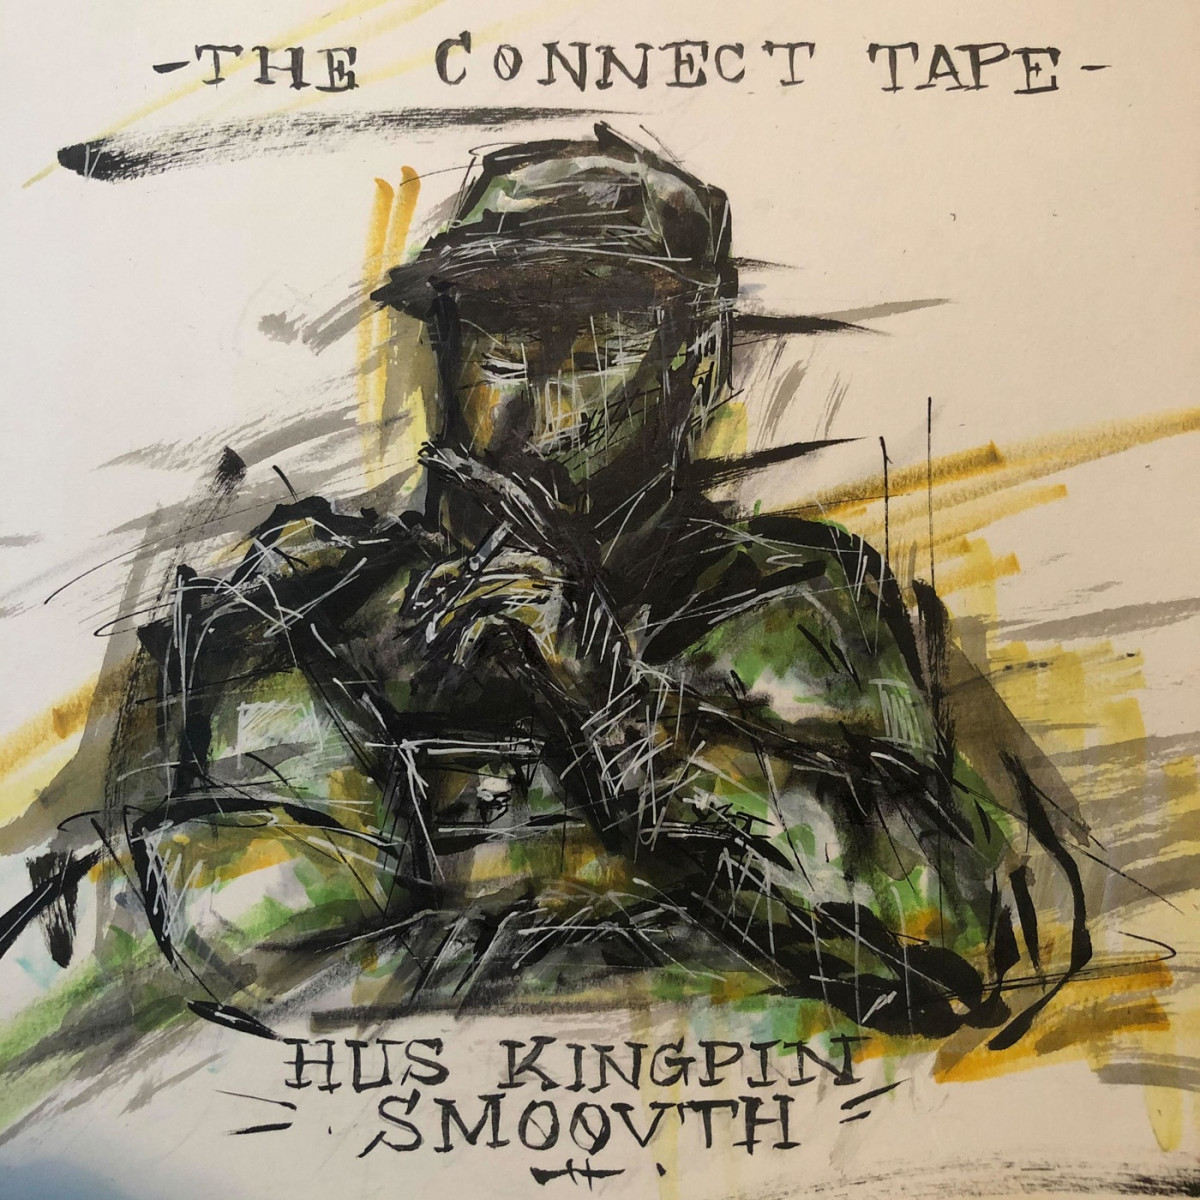 Hus Kingpin & SmooVth – «The Connect Tape»